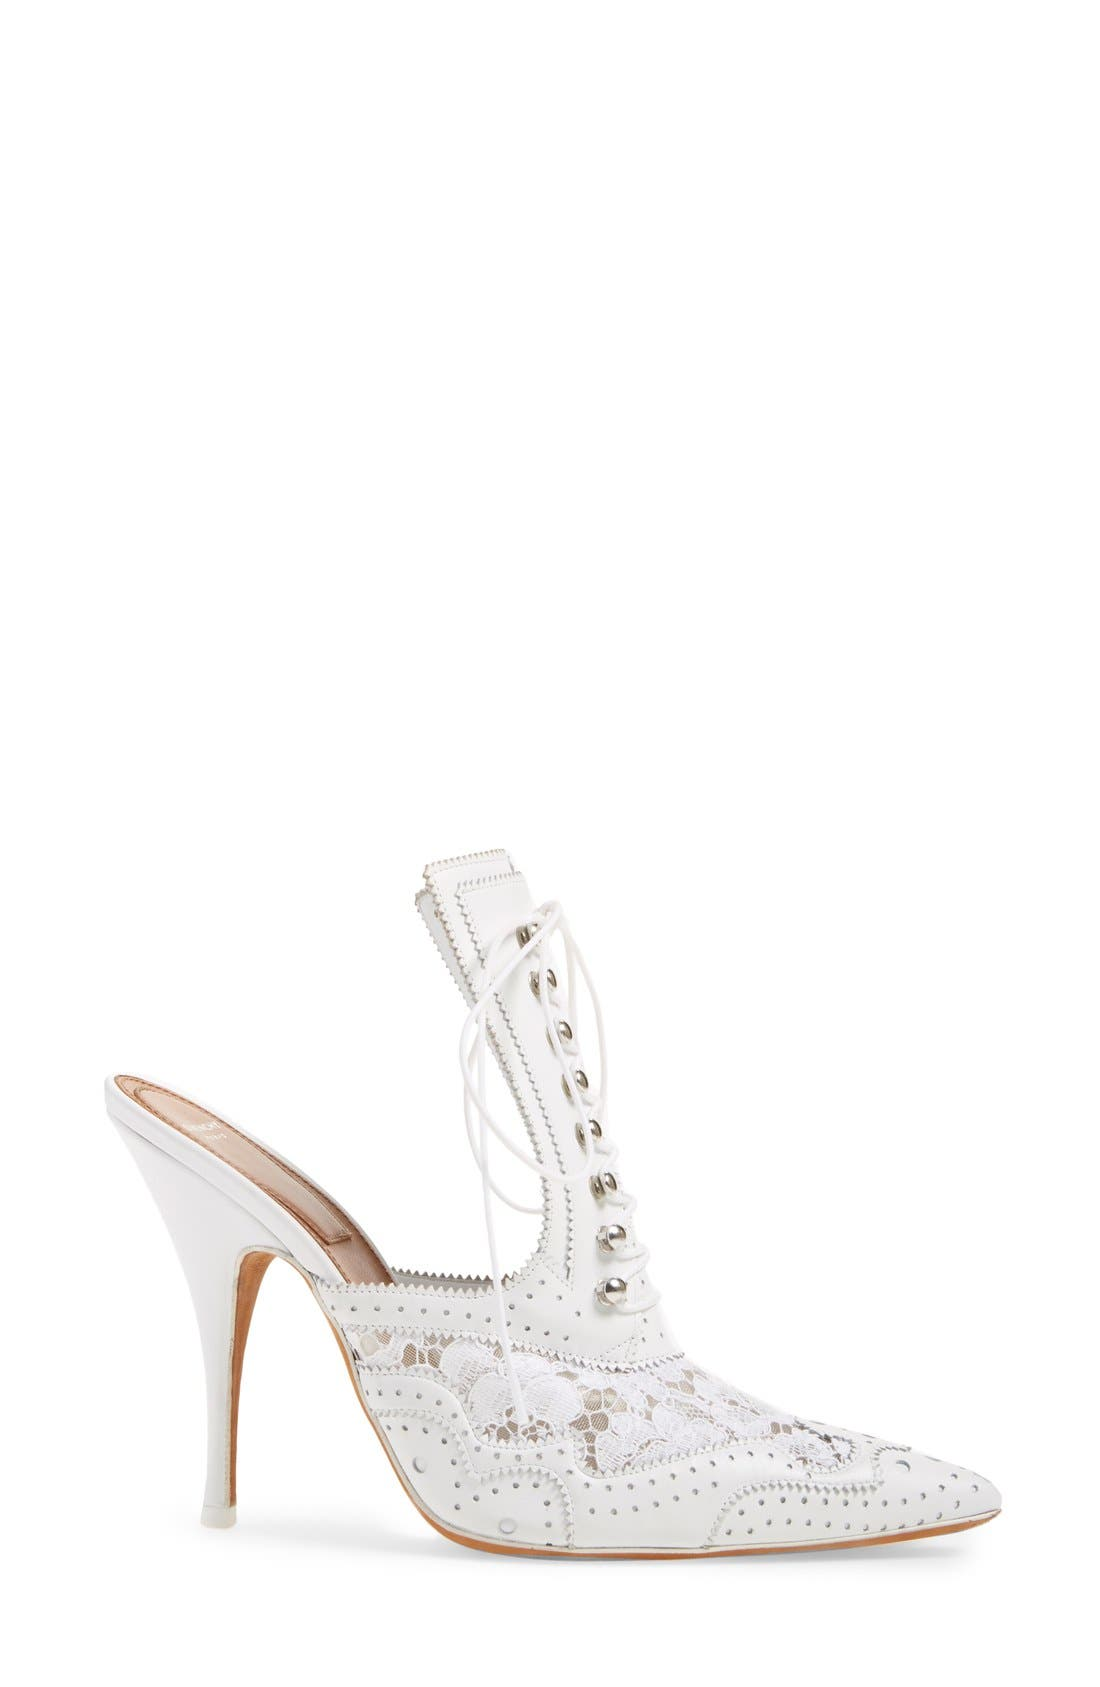 GIVENCHY, 'Rooja' Pointy Toe Mule, Alternate thumbnail 2, color, 101